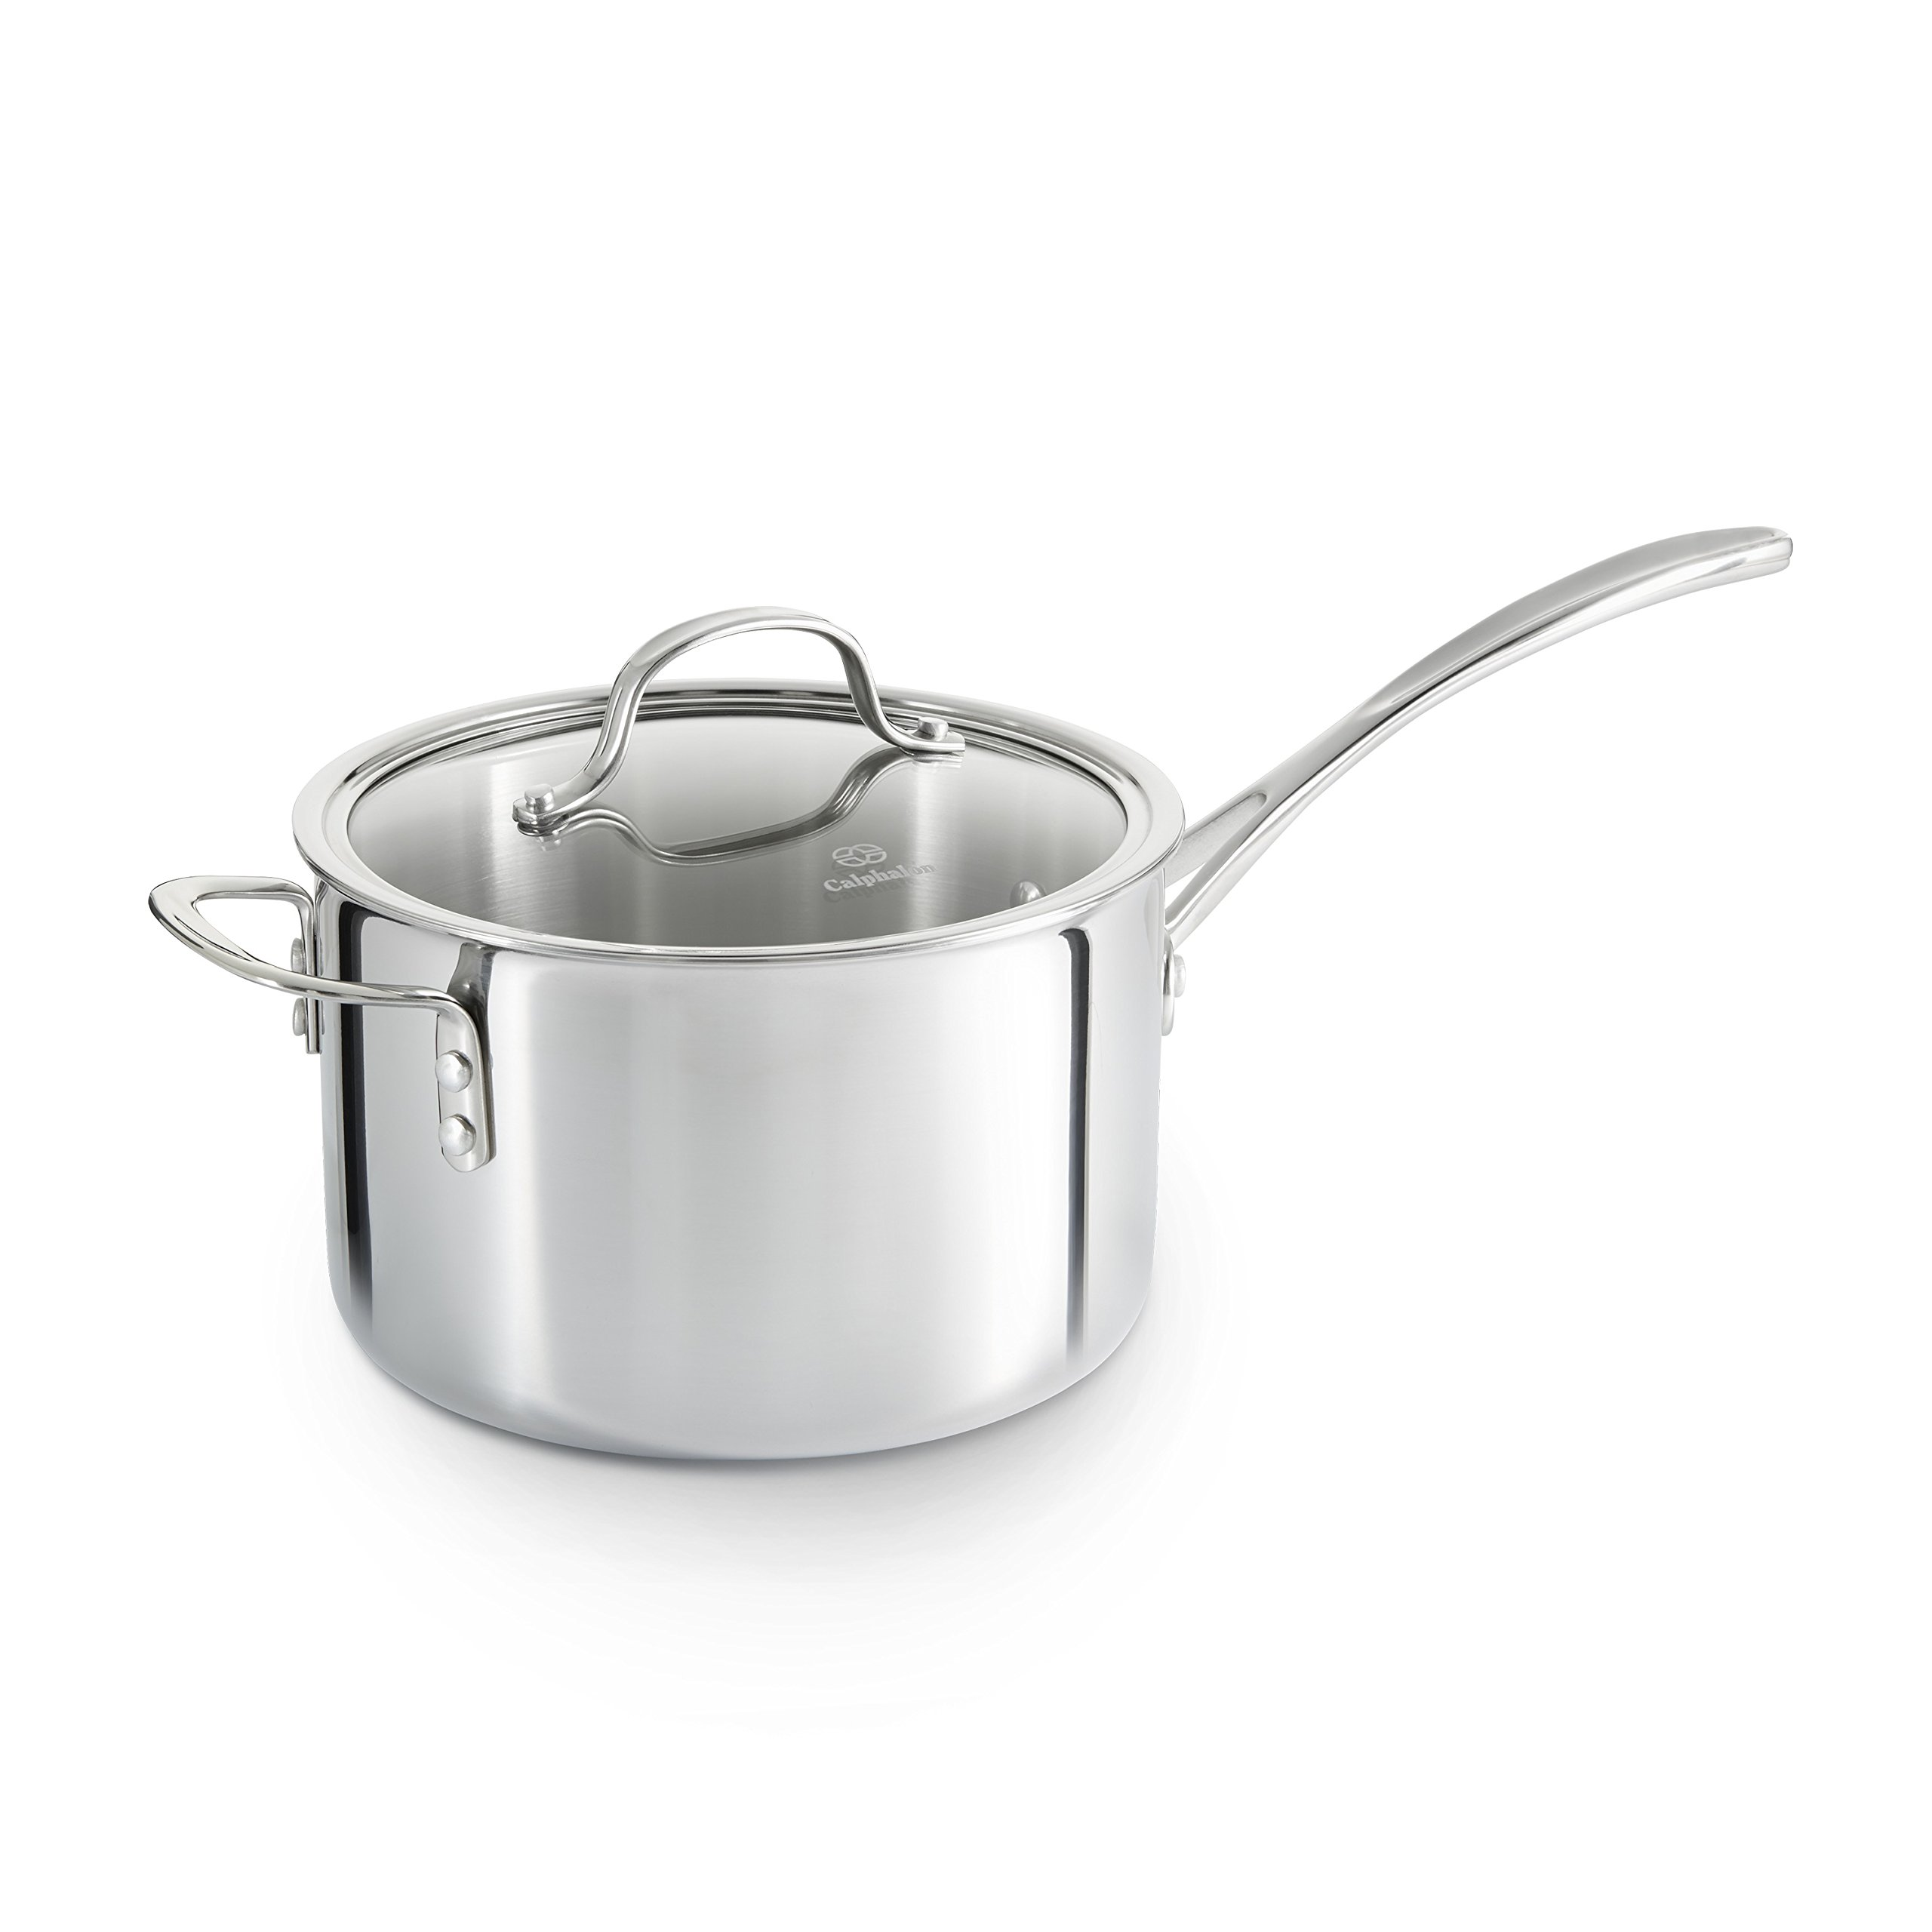 Calphalon Tri-Ply Stainless Steel 4-1/2-Quart Sauce Pan with Cover